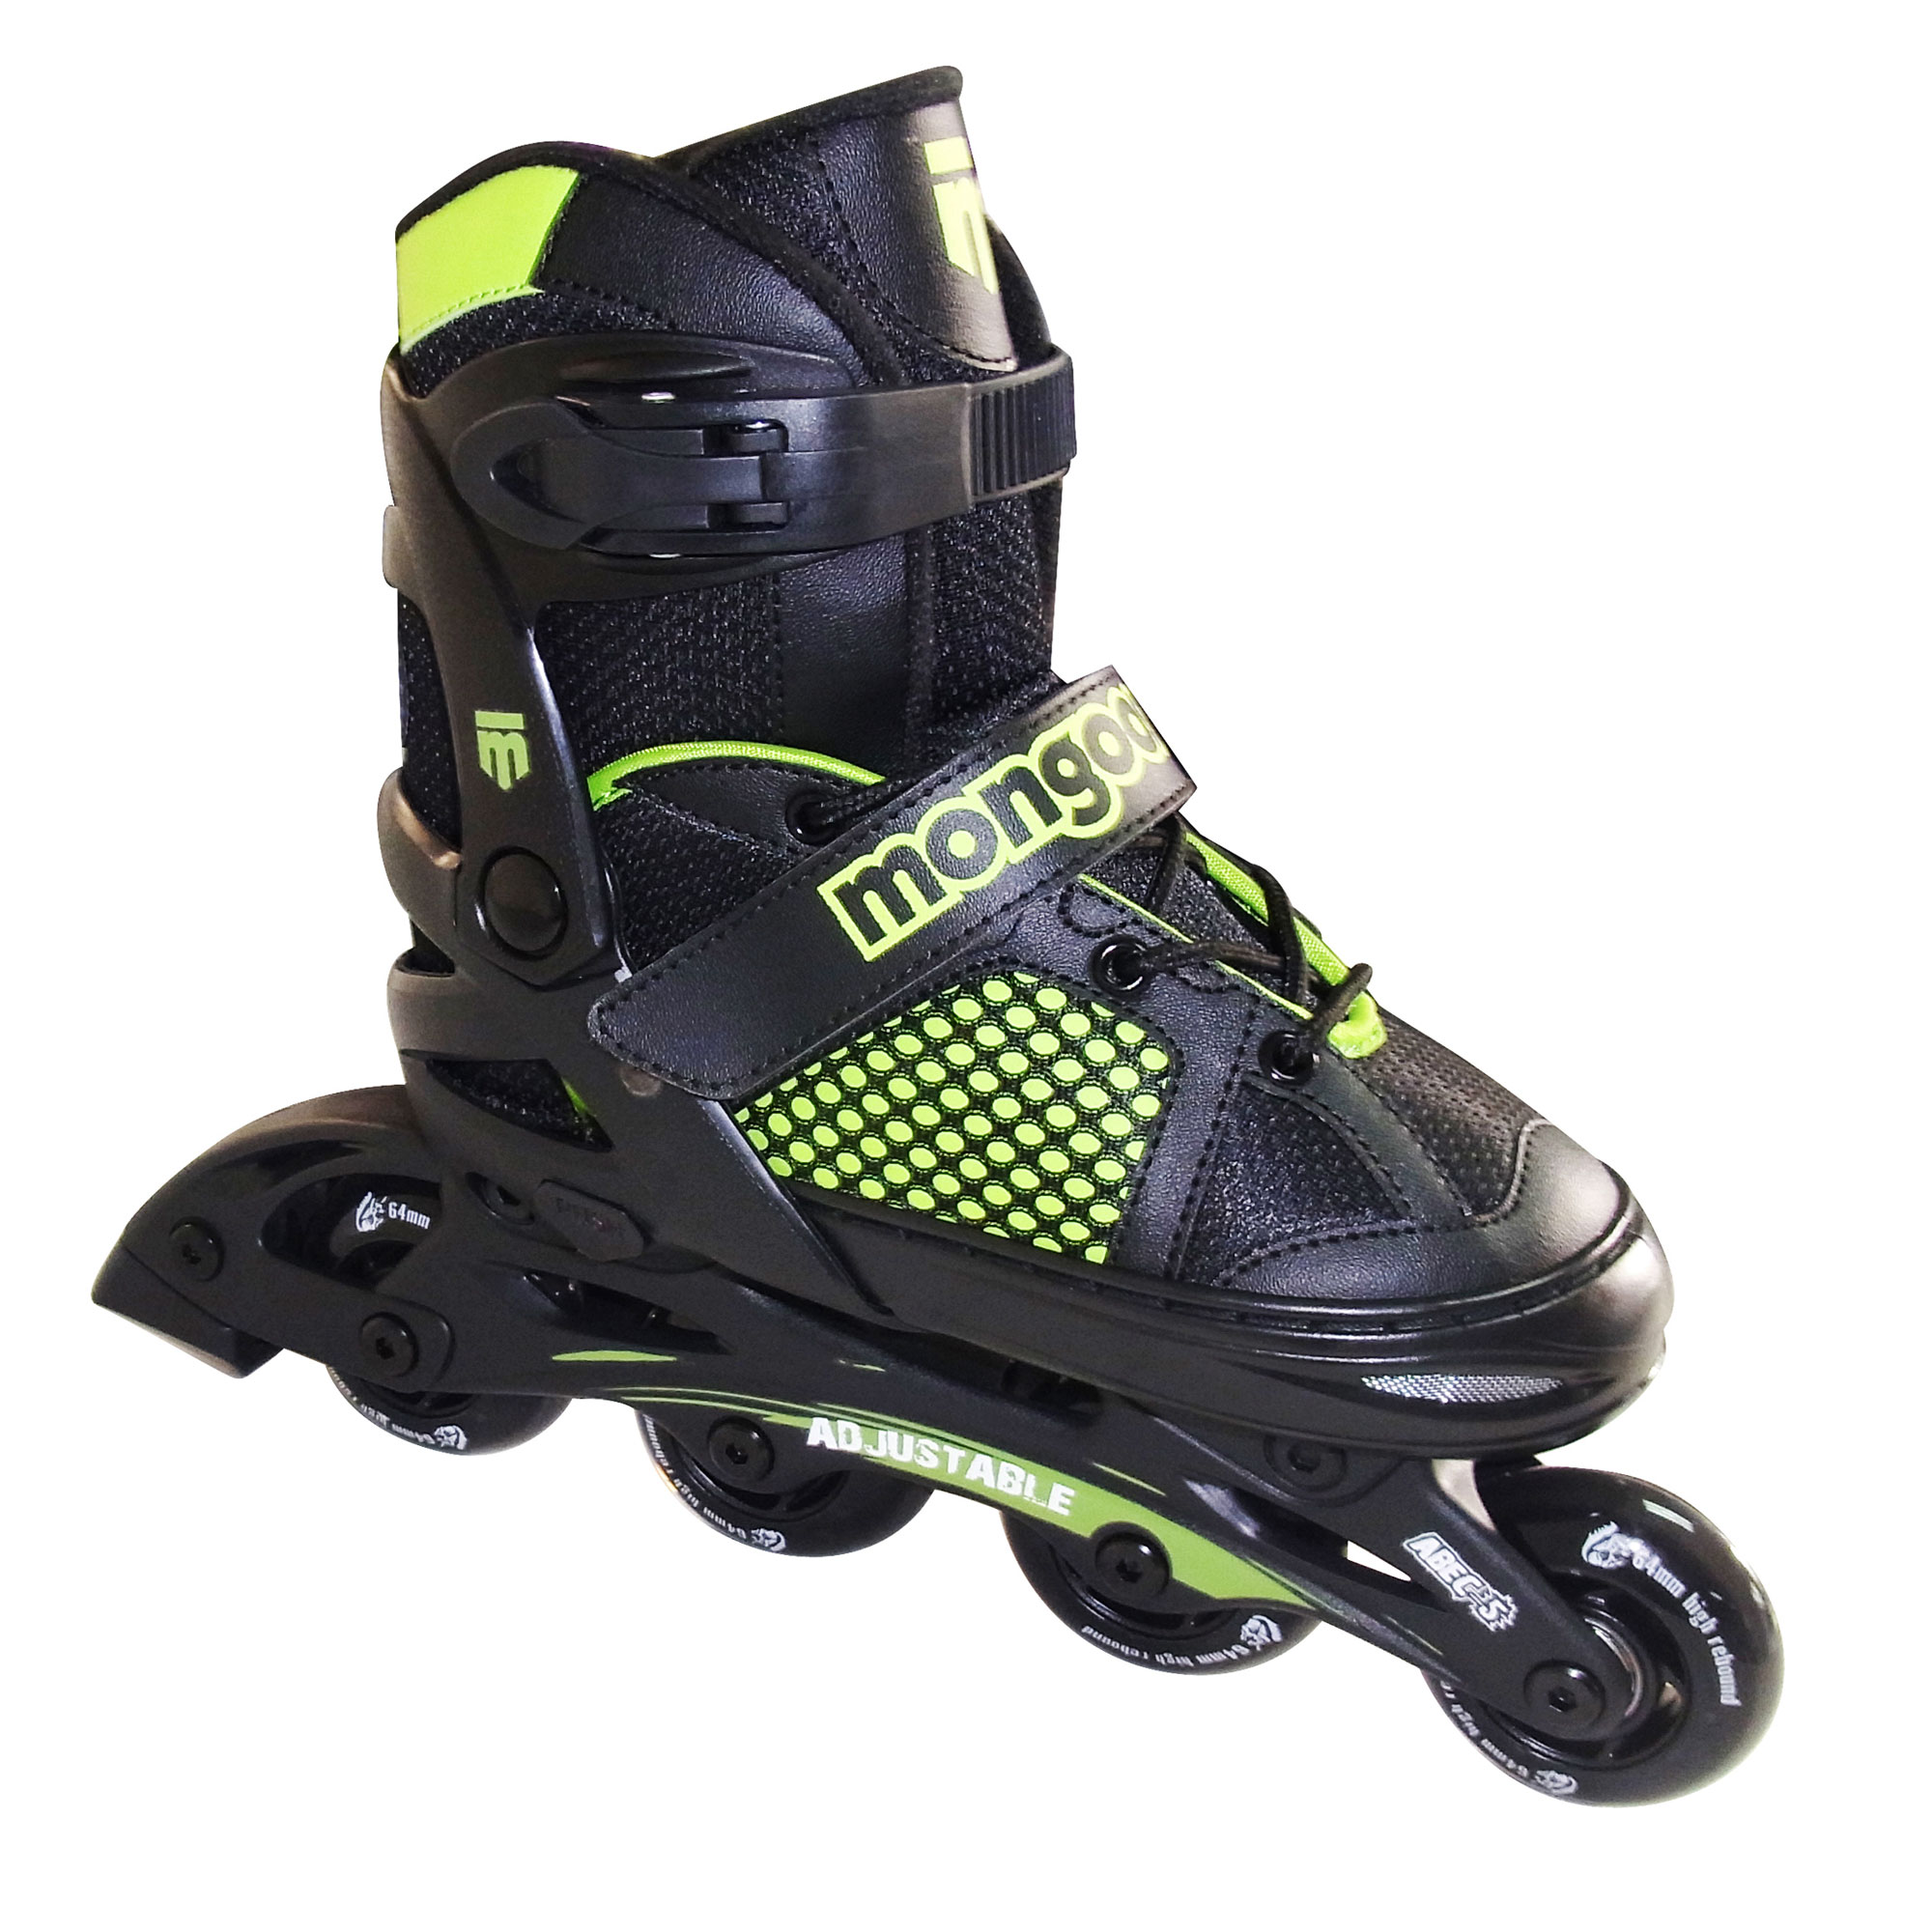 Mongoose MG-088B-S Boys' Size Small Comfortable Inline Rollerblade Skates, Green